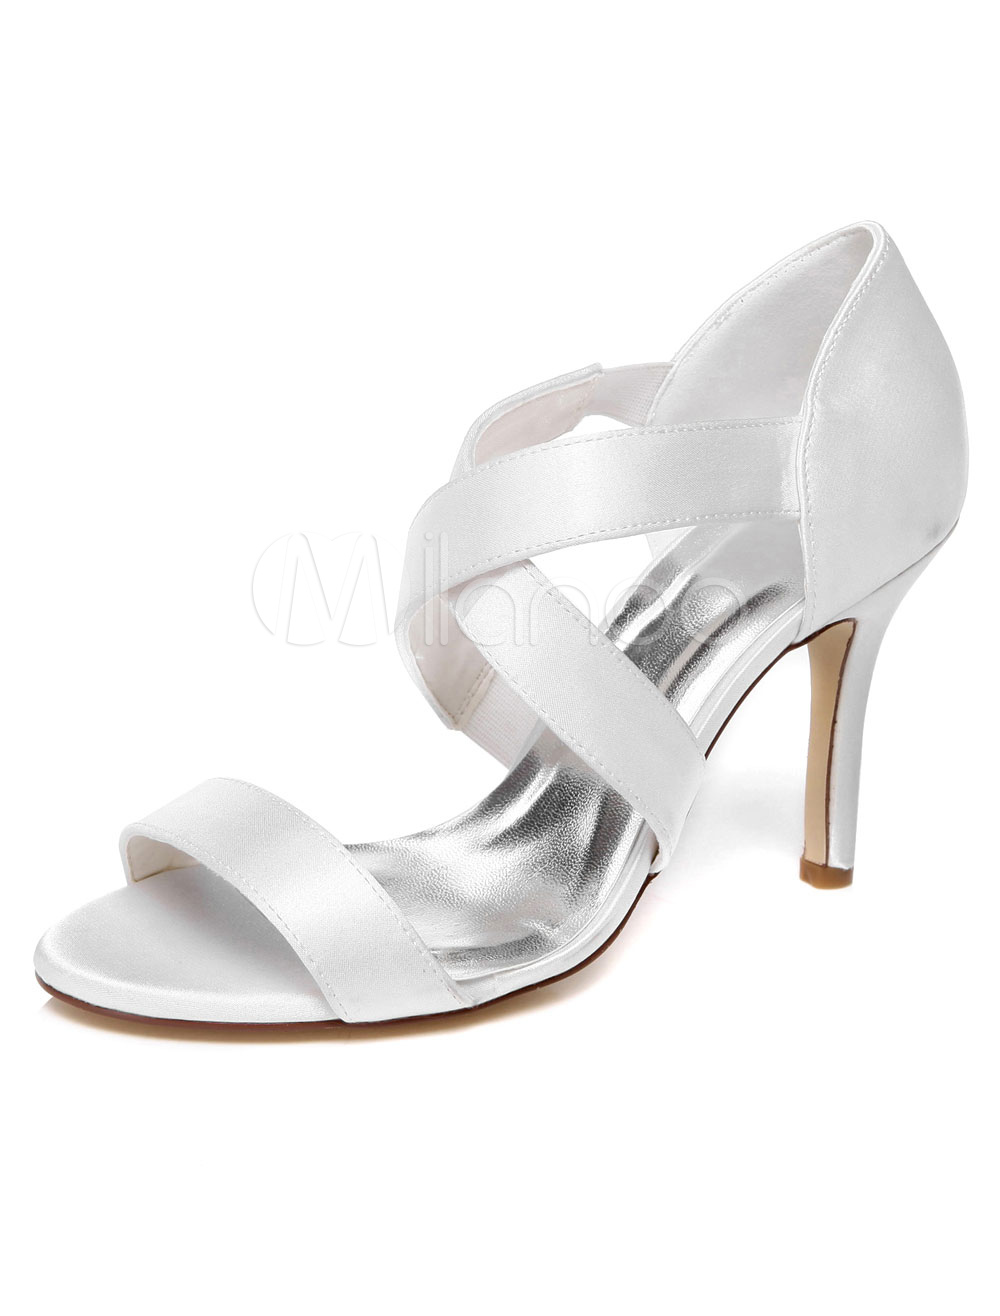 White Satin Open Toe Evening&Bridal Sandals for Women